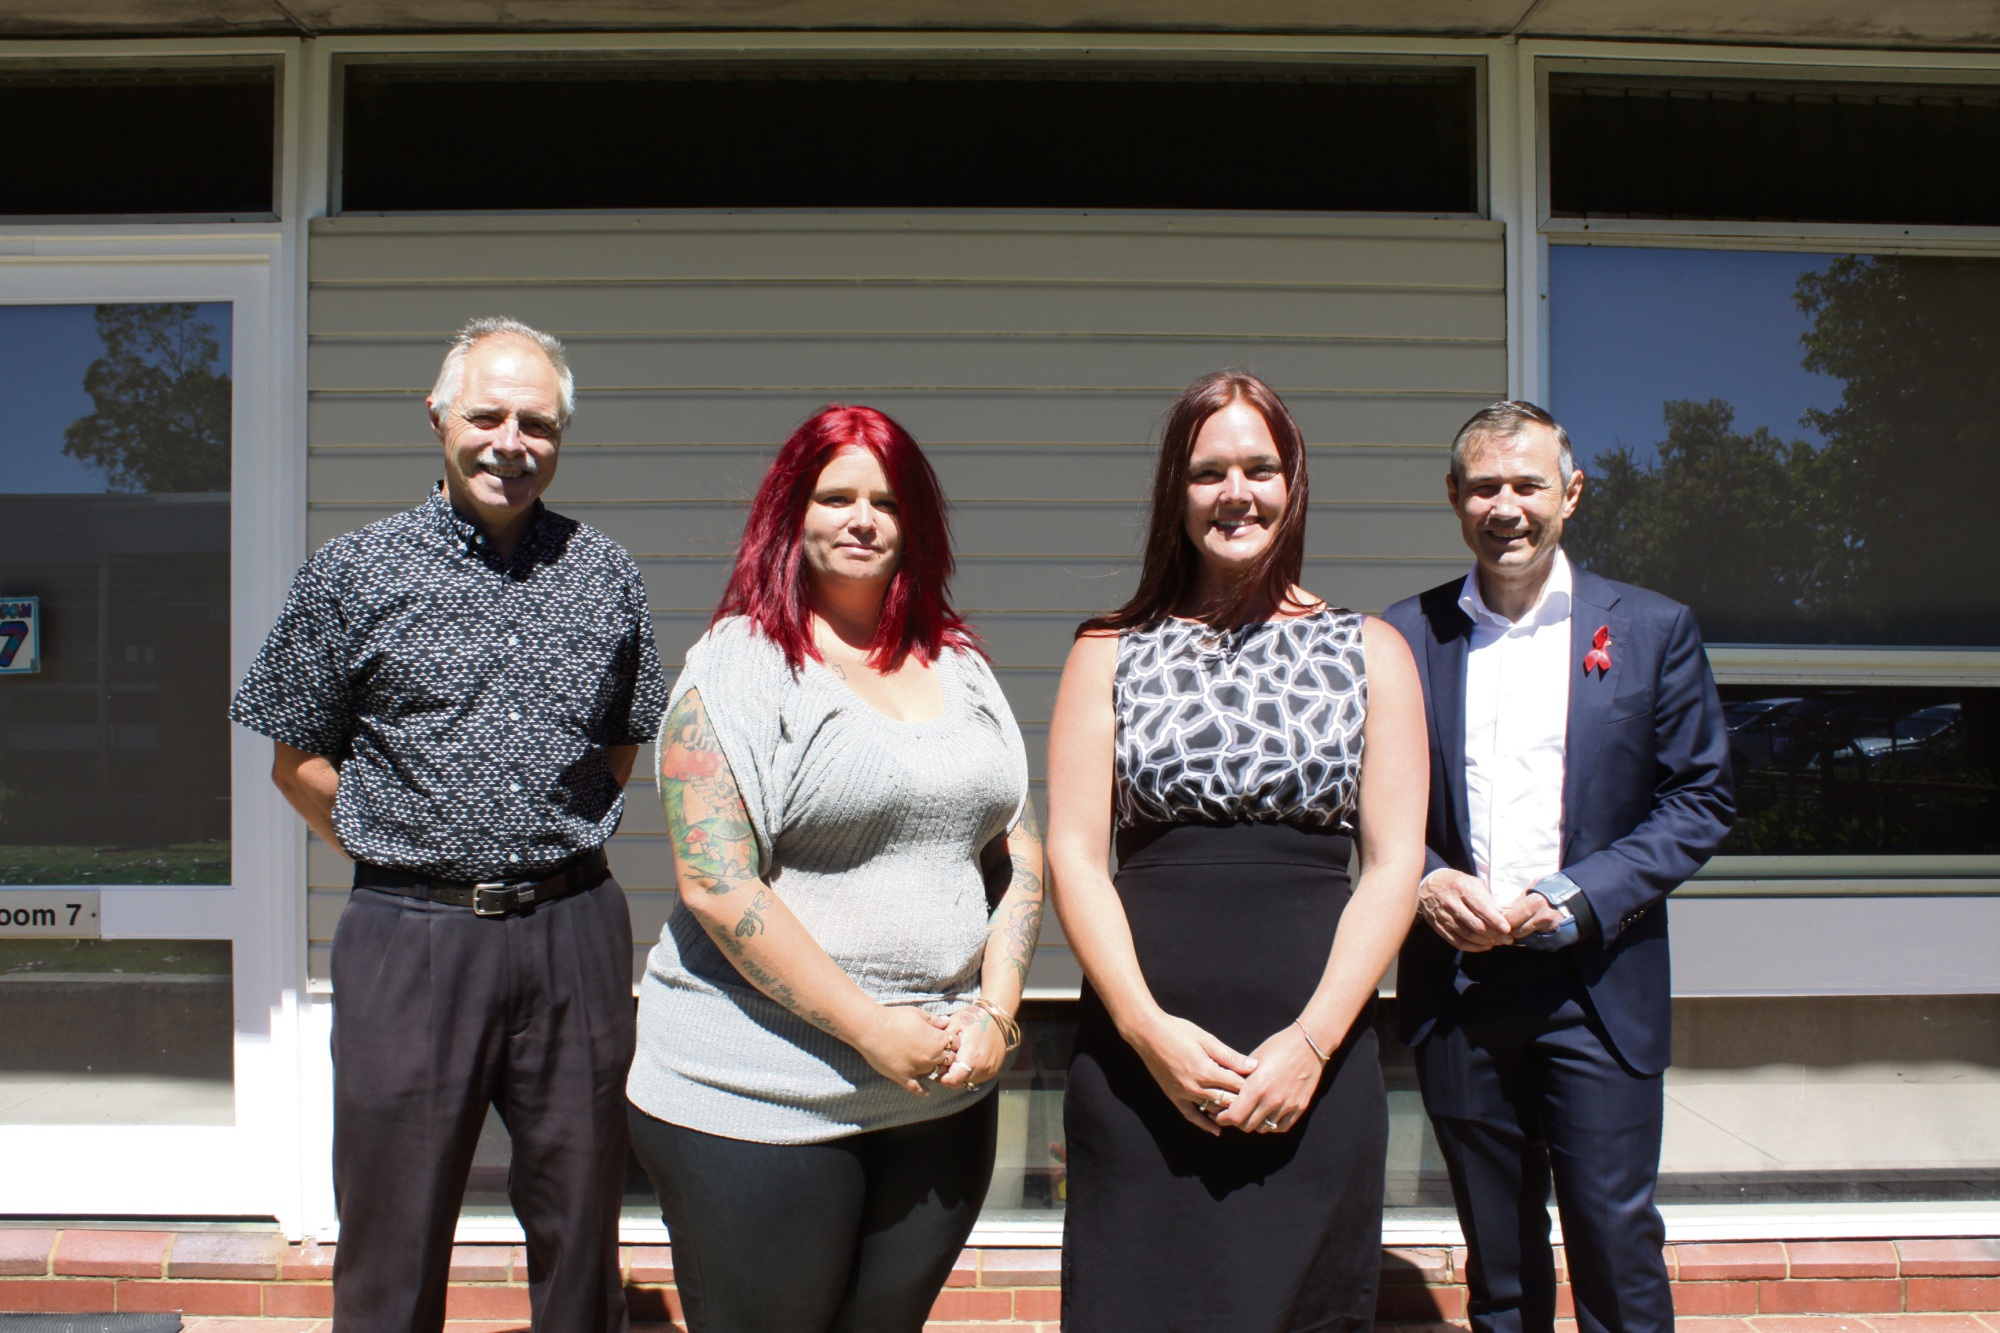 North Parmelia PS principal Peter Elsegood, P&C canteen manager Nikita Fisher, school council chairperson Emma Heedes and Deputy Premier Roger Cook.